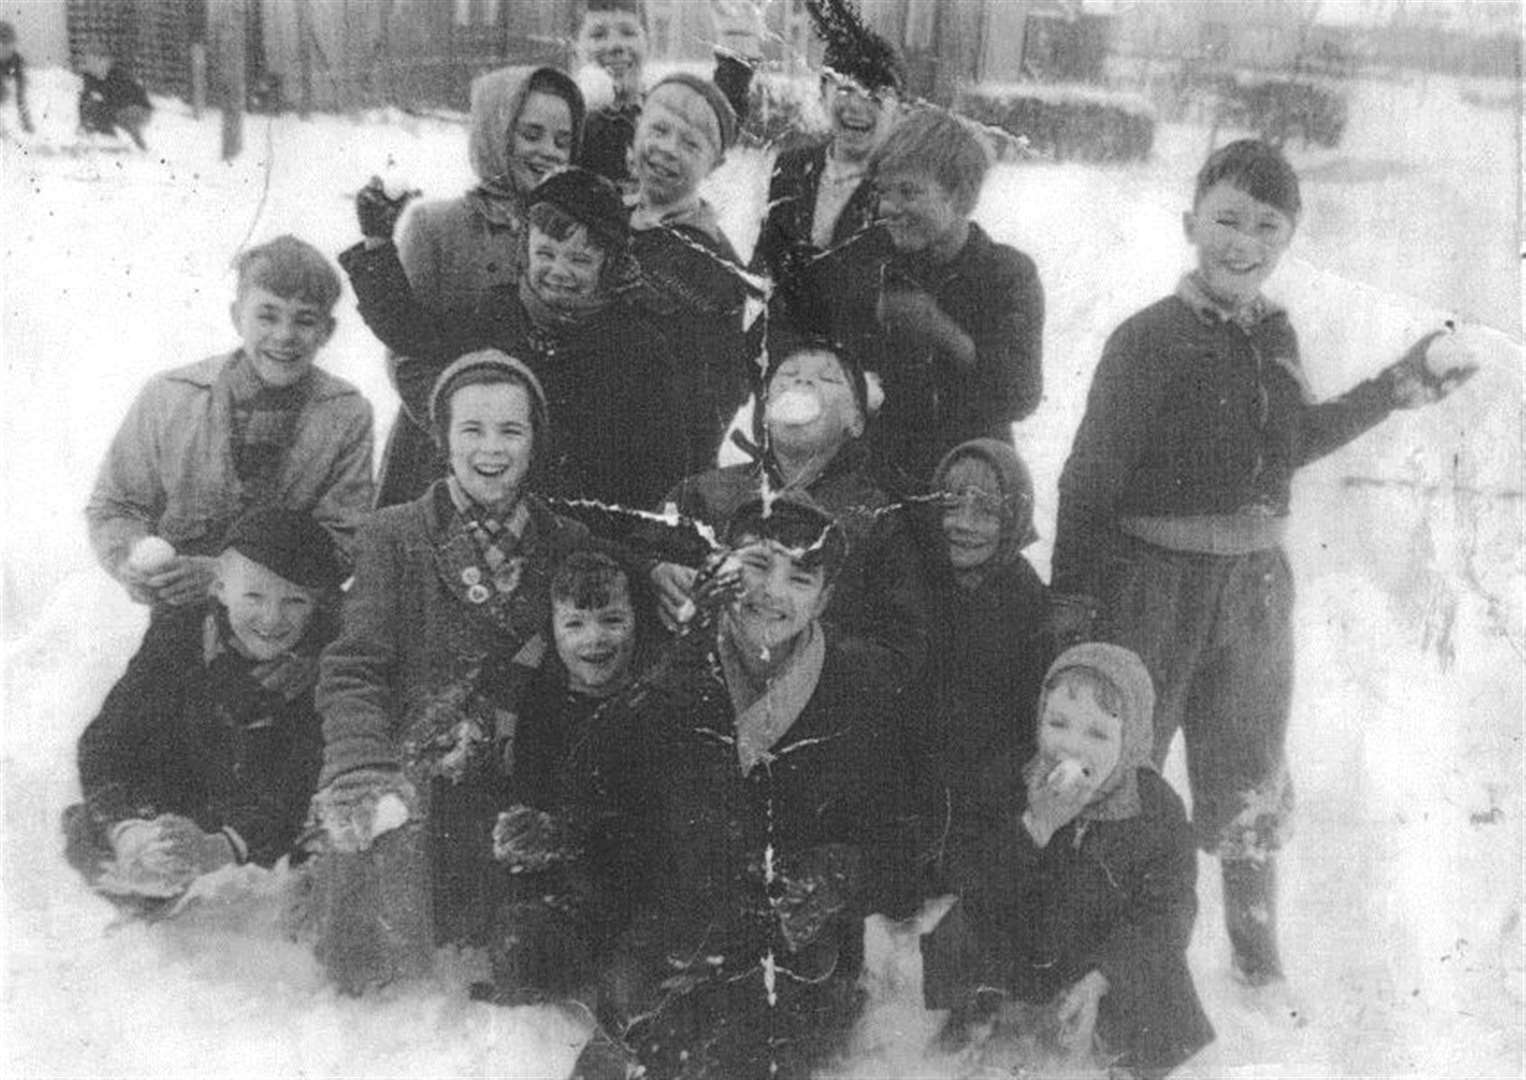 MEMORY LANE: Grantham snowballer does not remember photograph